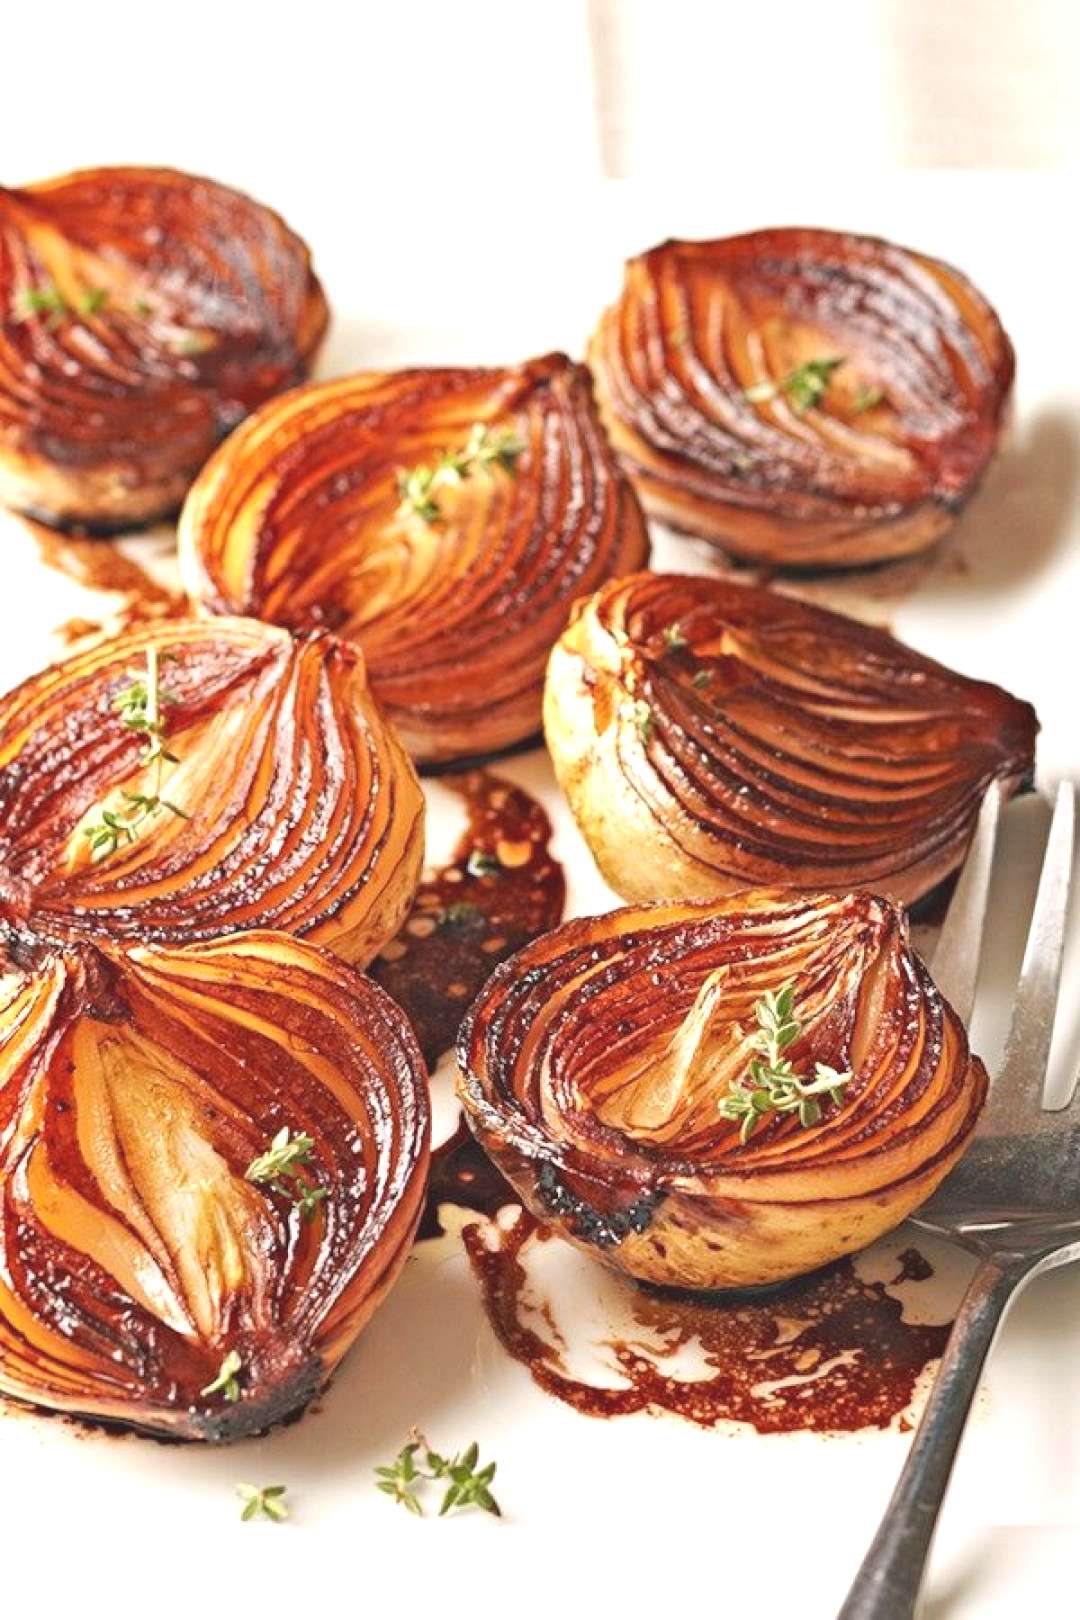 Caramelized Balsamic Onions - As these onion halves cook, the balsamic mixture becomes syrupy and